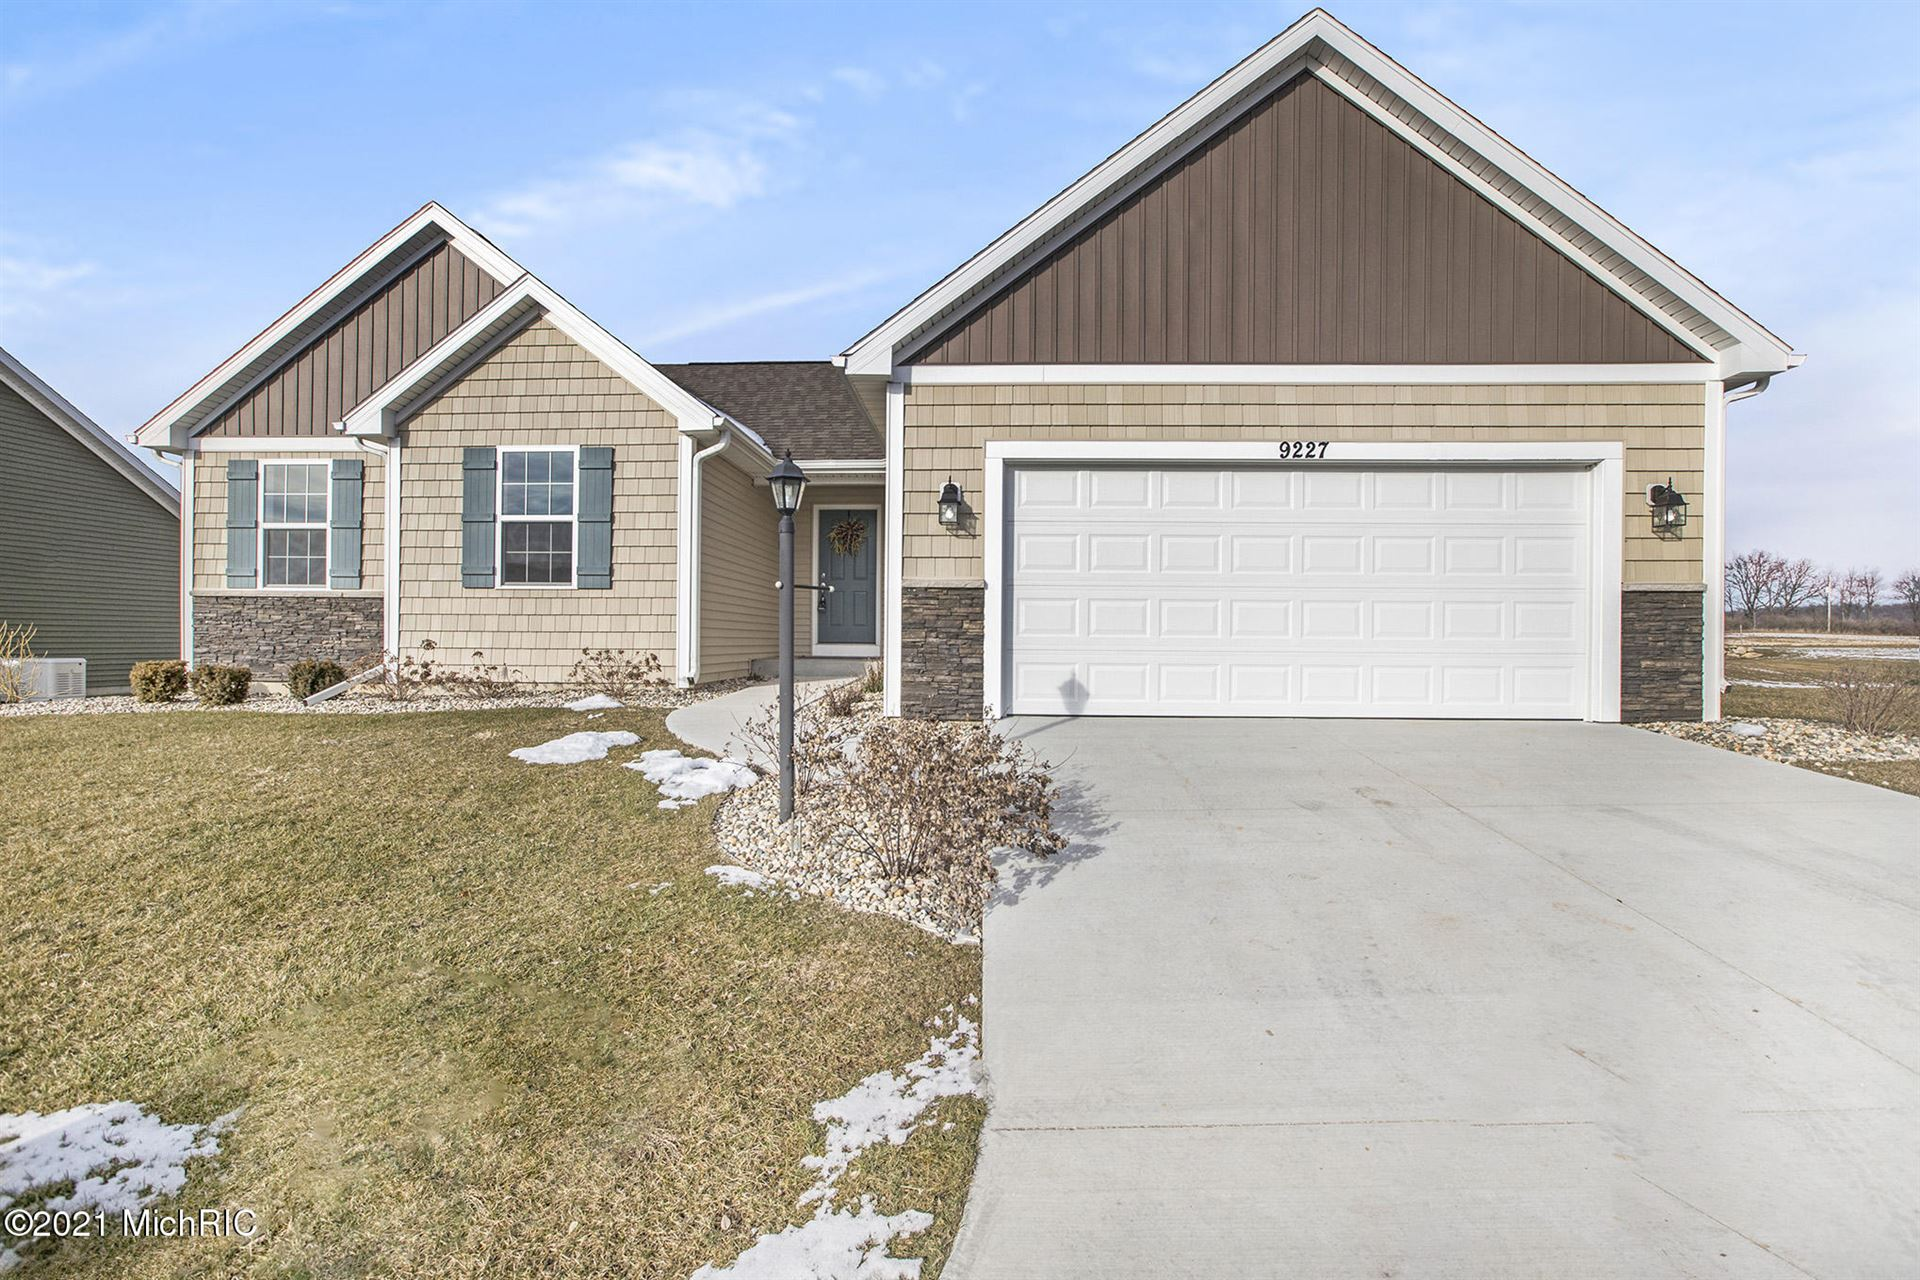 9227 Cottage Gate #30, Richland, MI 49083 - MLS#: 20025540